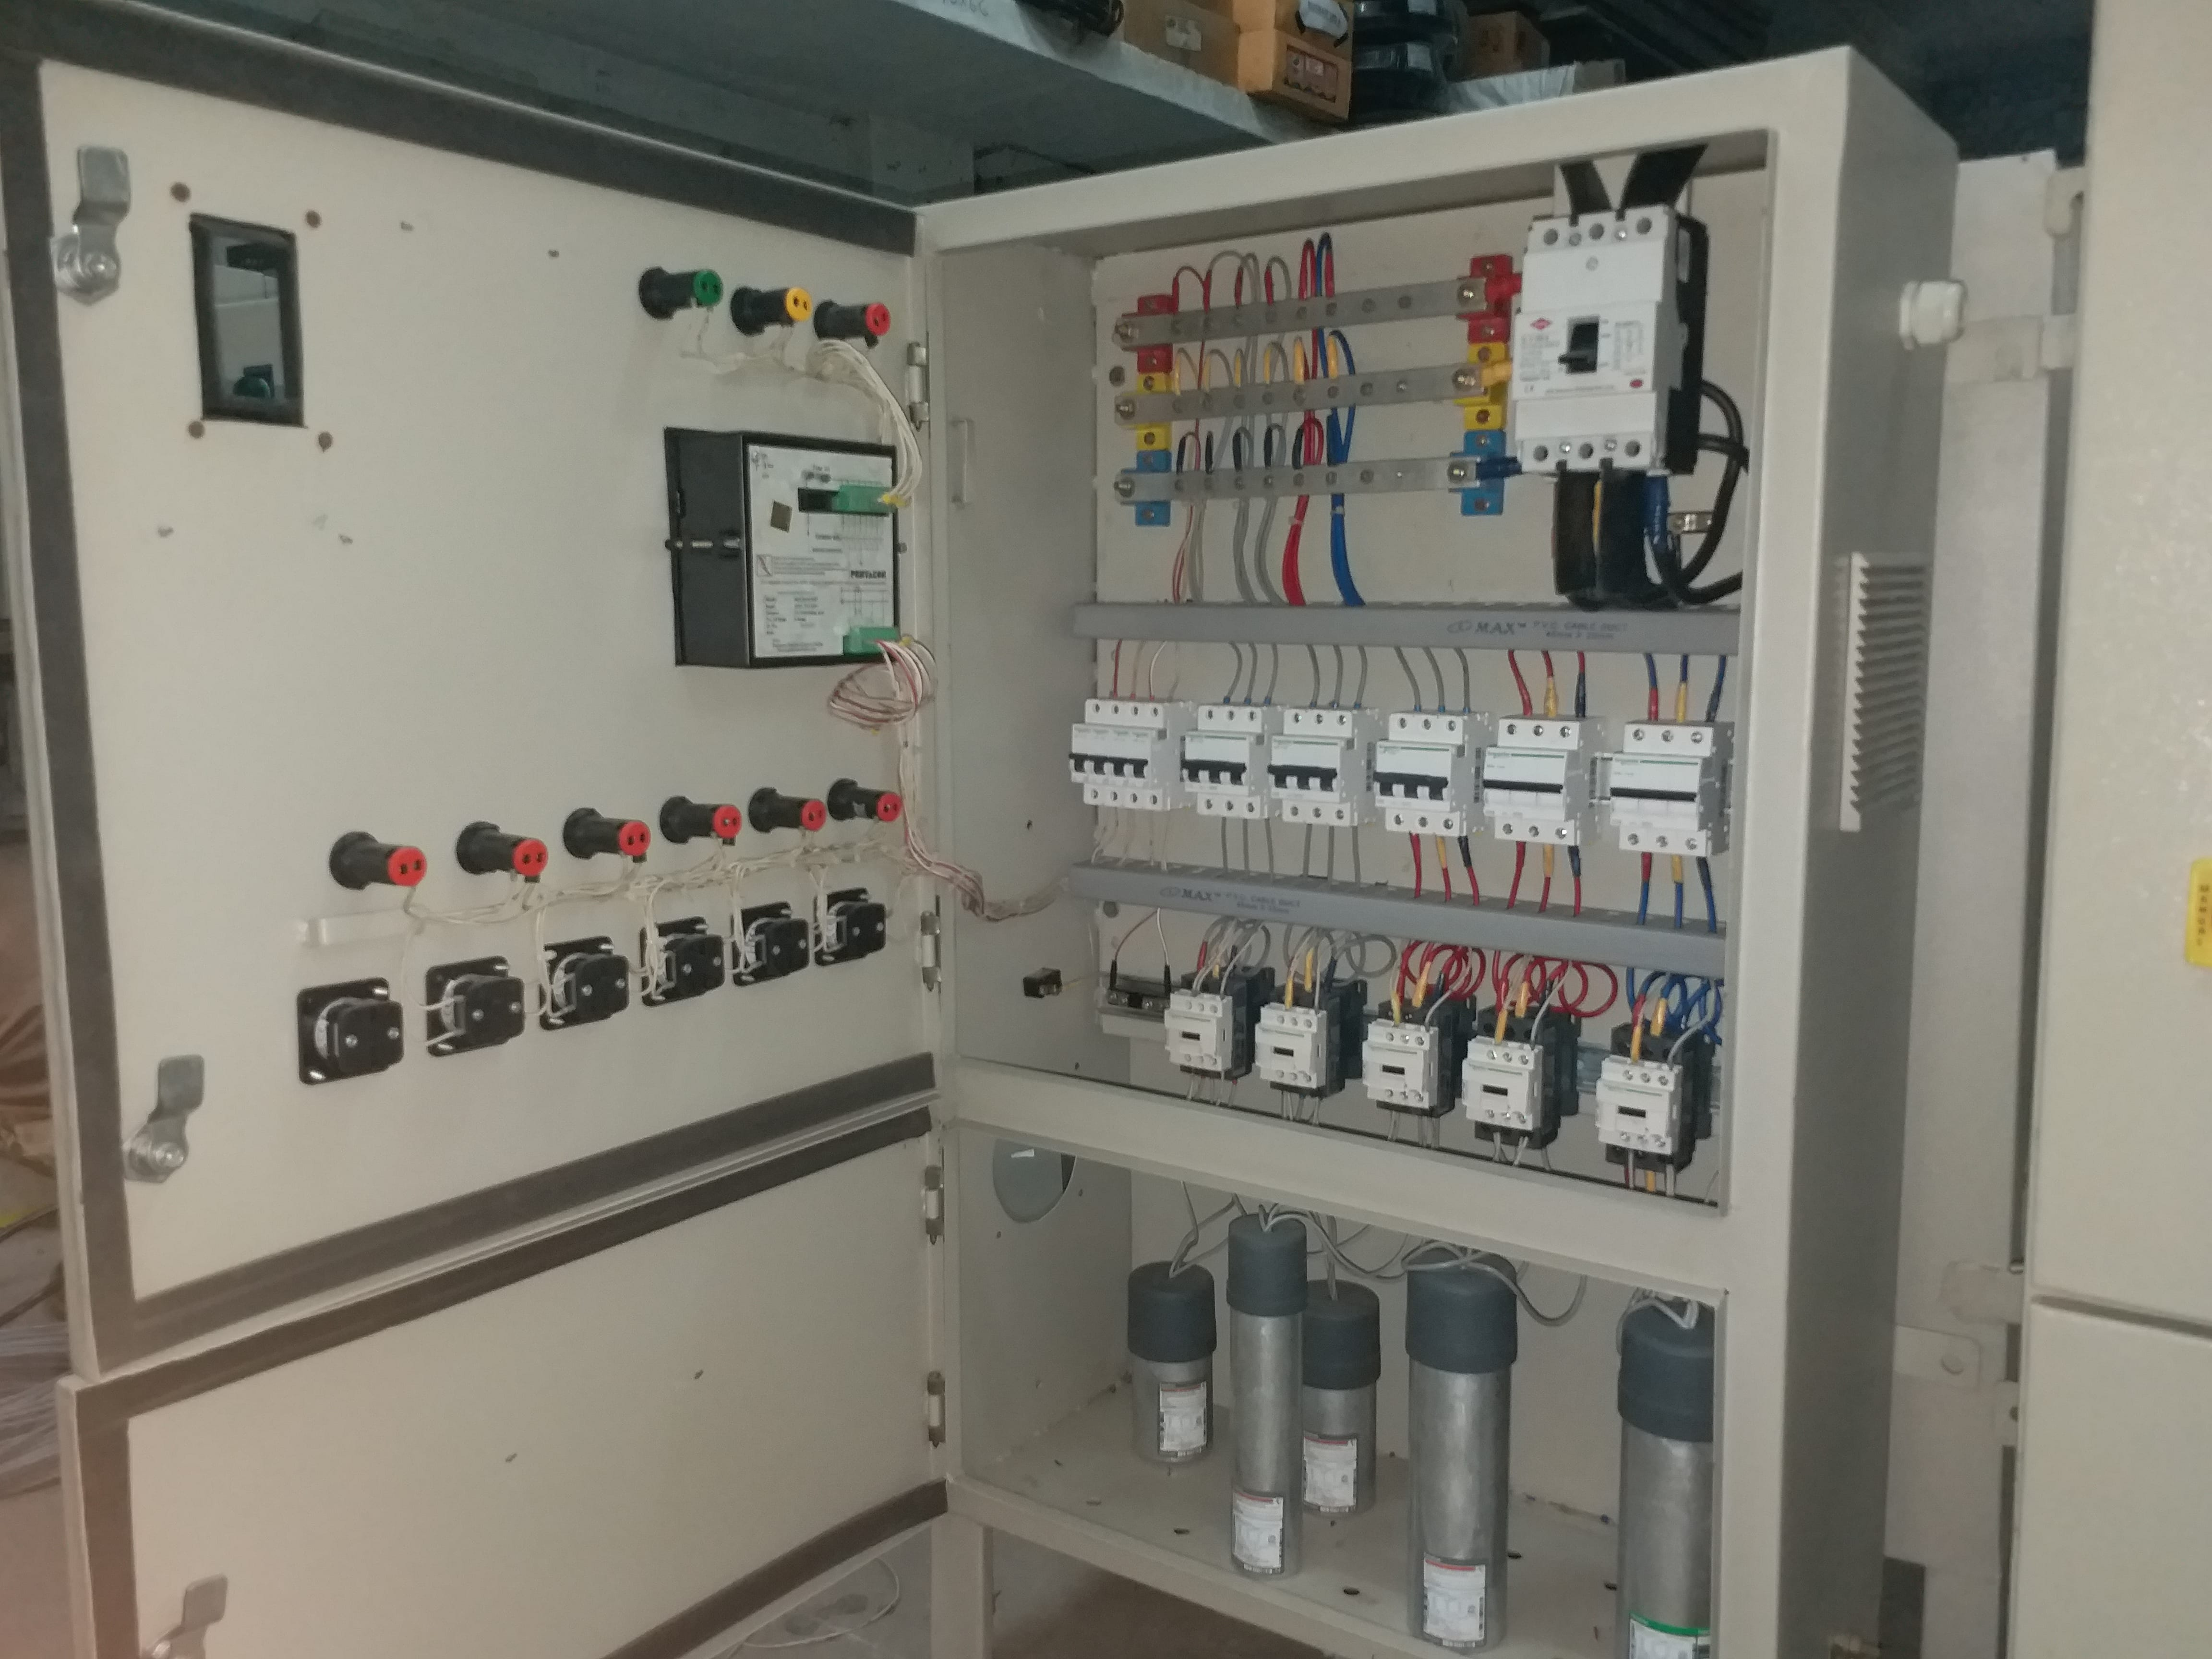 Inside Power Factor Control Panel